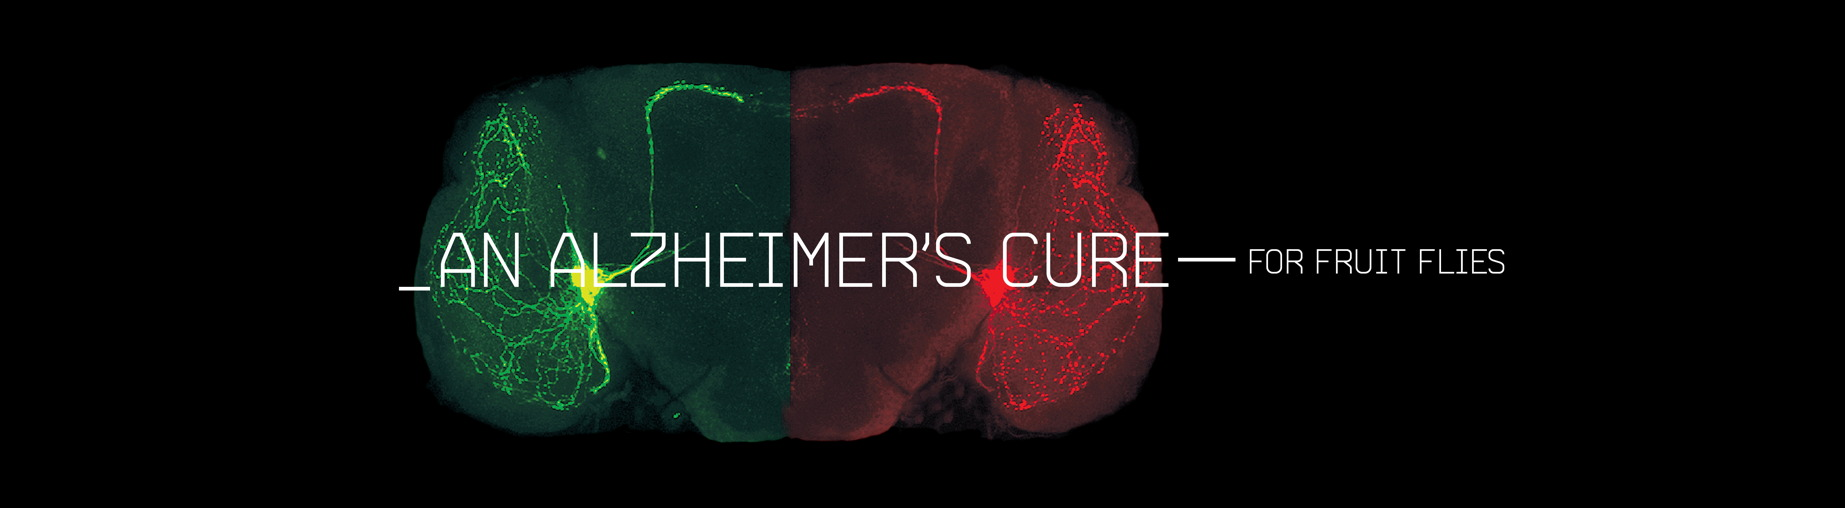 An Alzheimer's Cure — with Fruit Flies